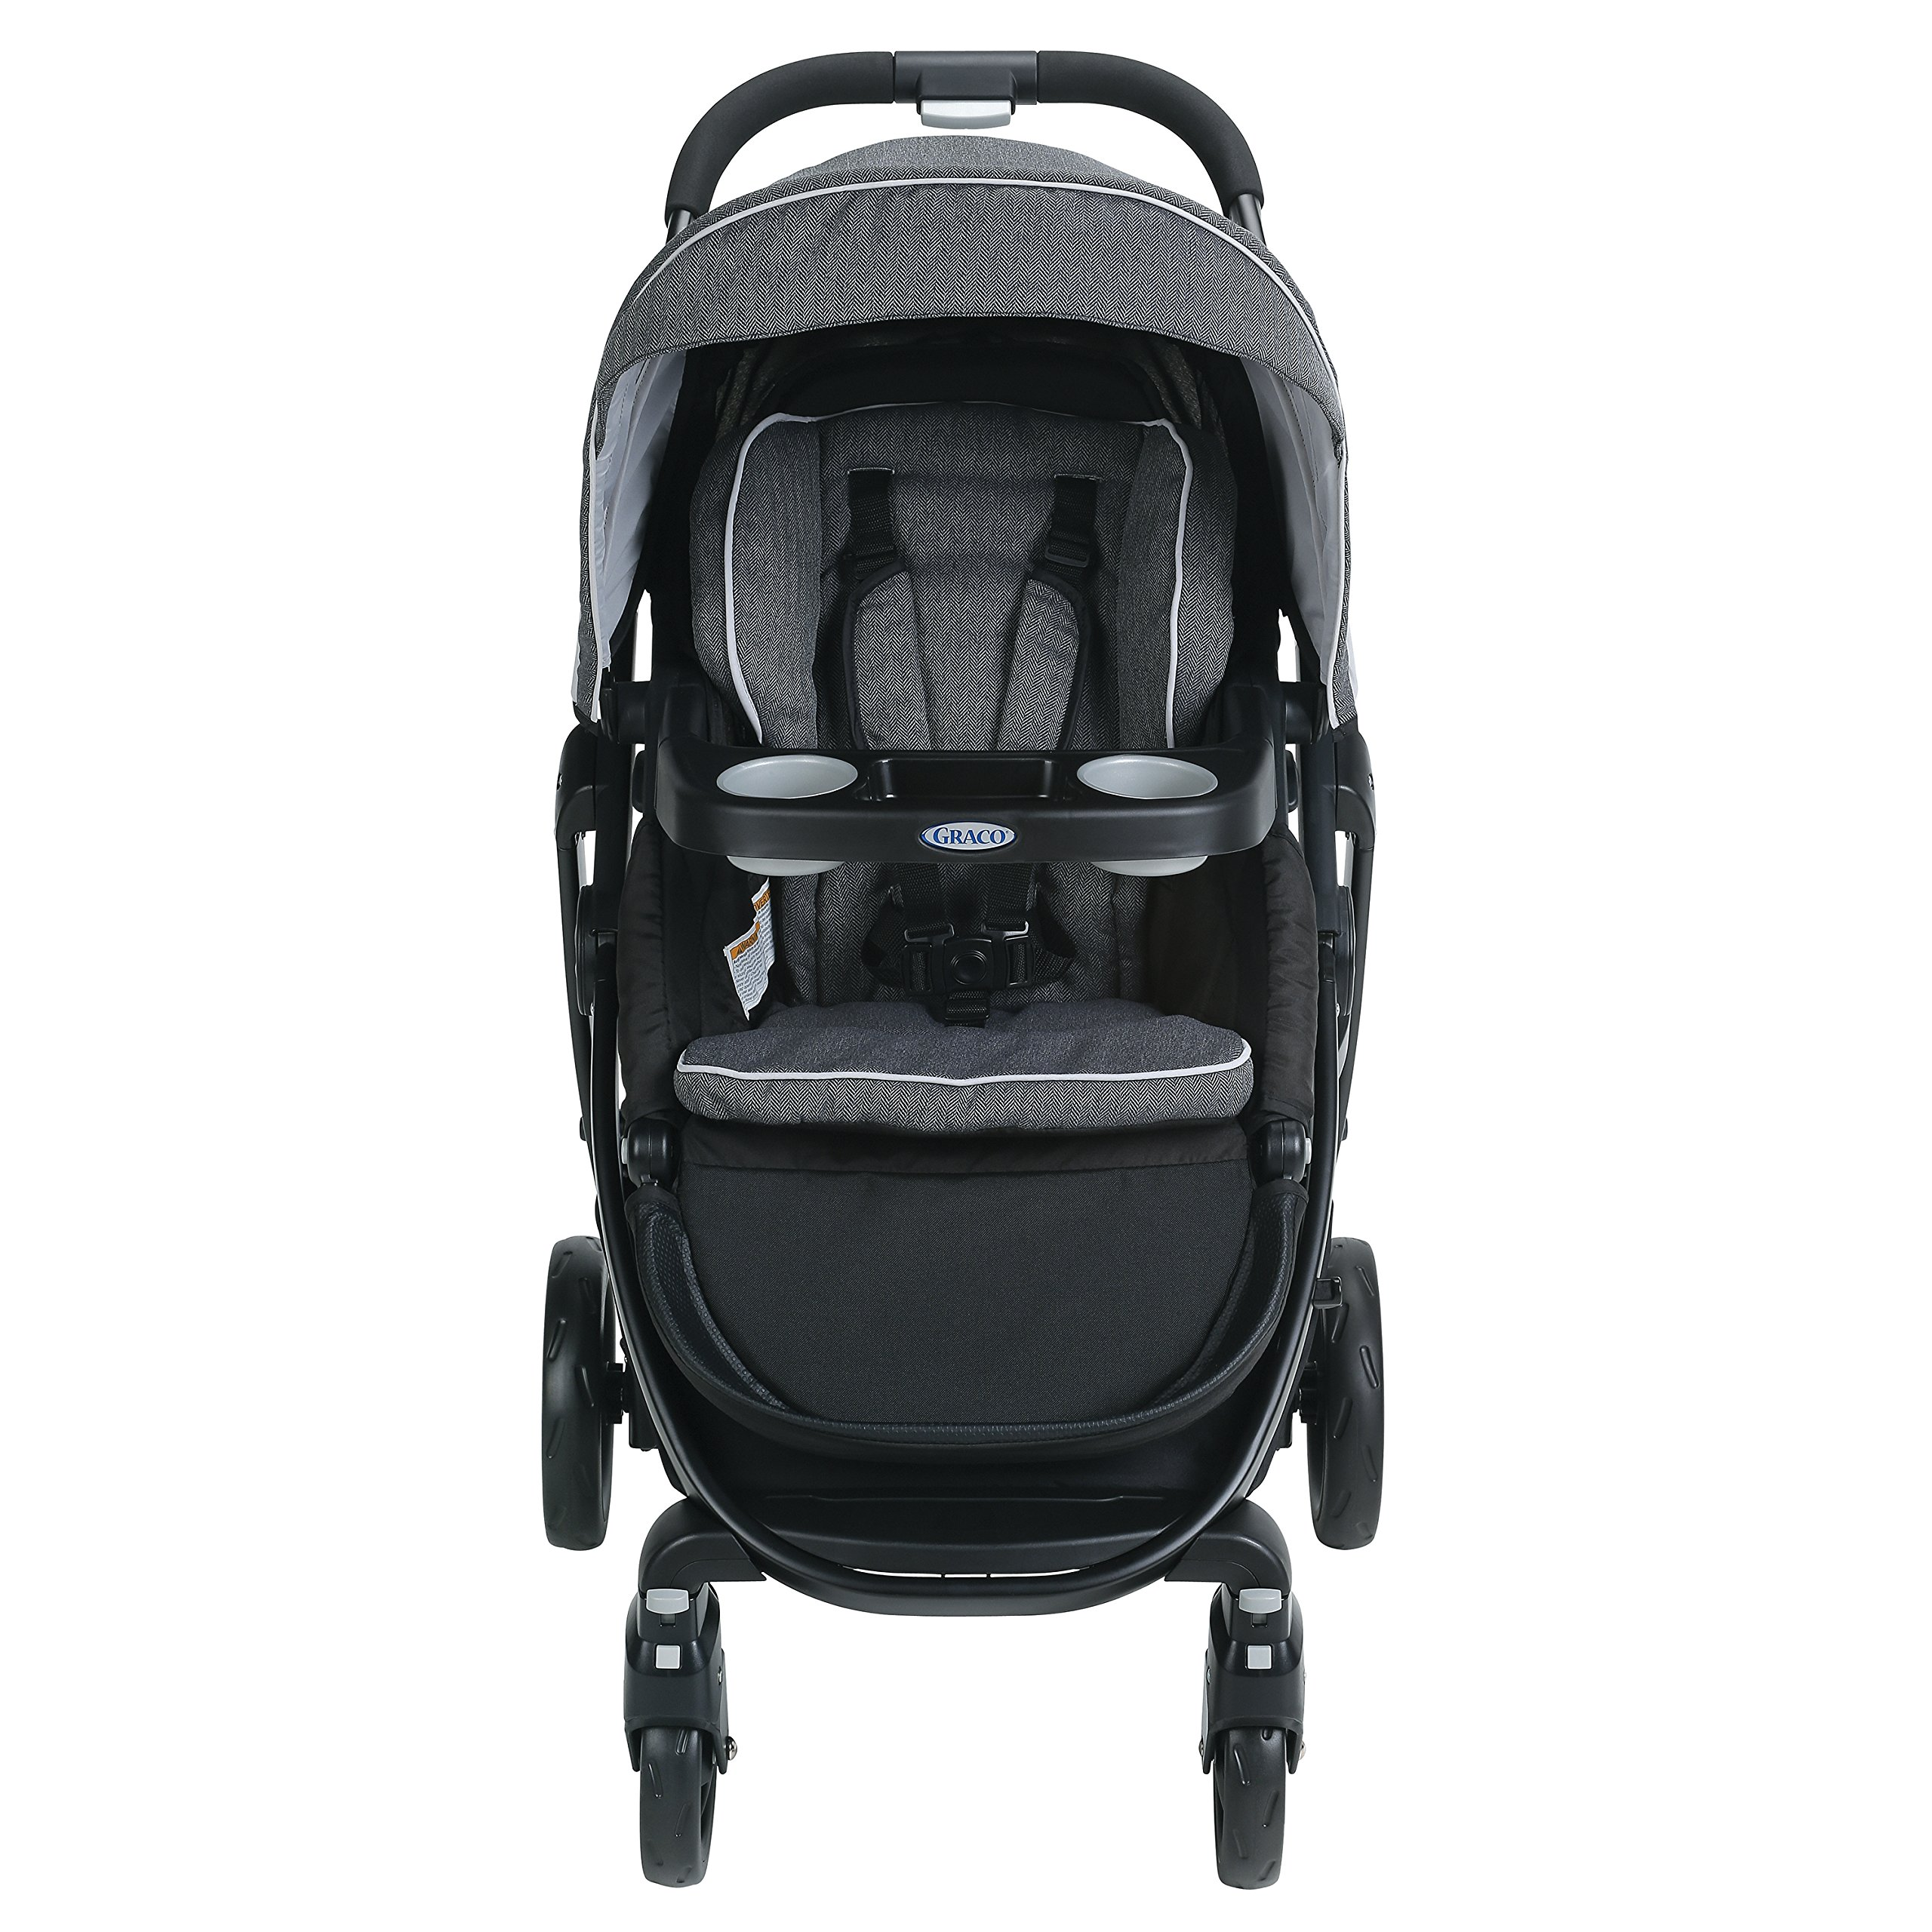 Graco Modes Stroller, Click Connect, Grayson by Graco (Image #2)